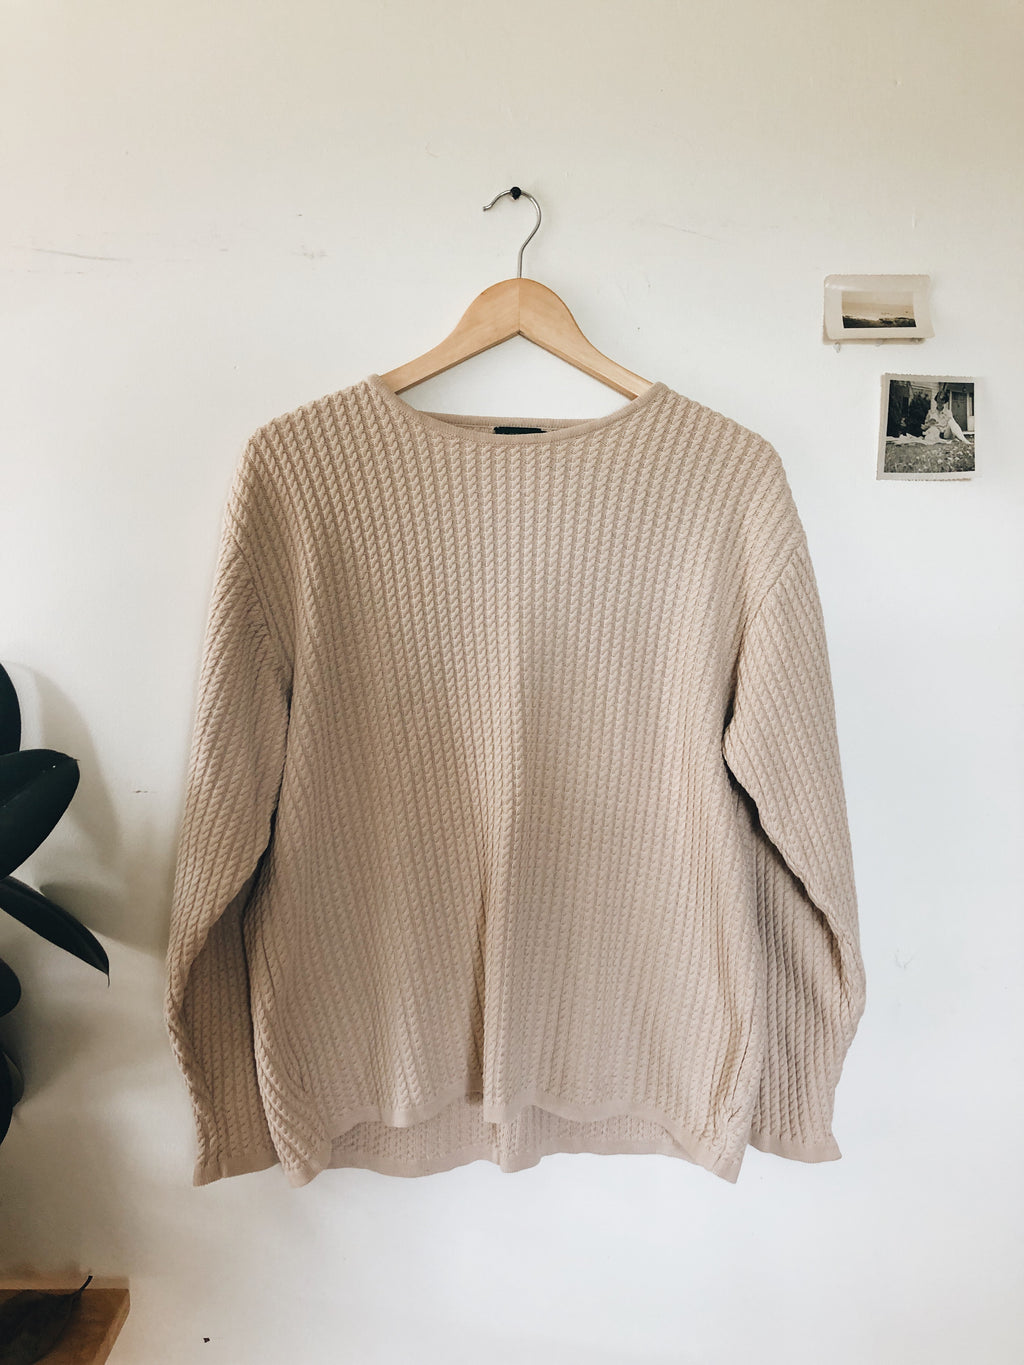 Vintage J.Crew Cotton Sweater